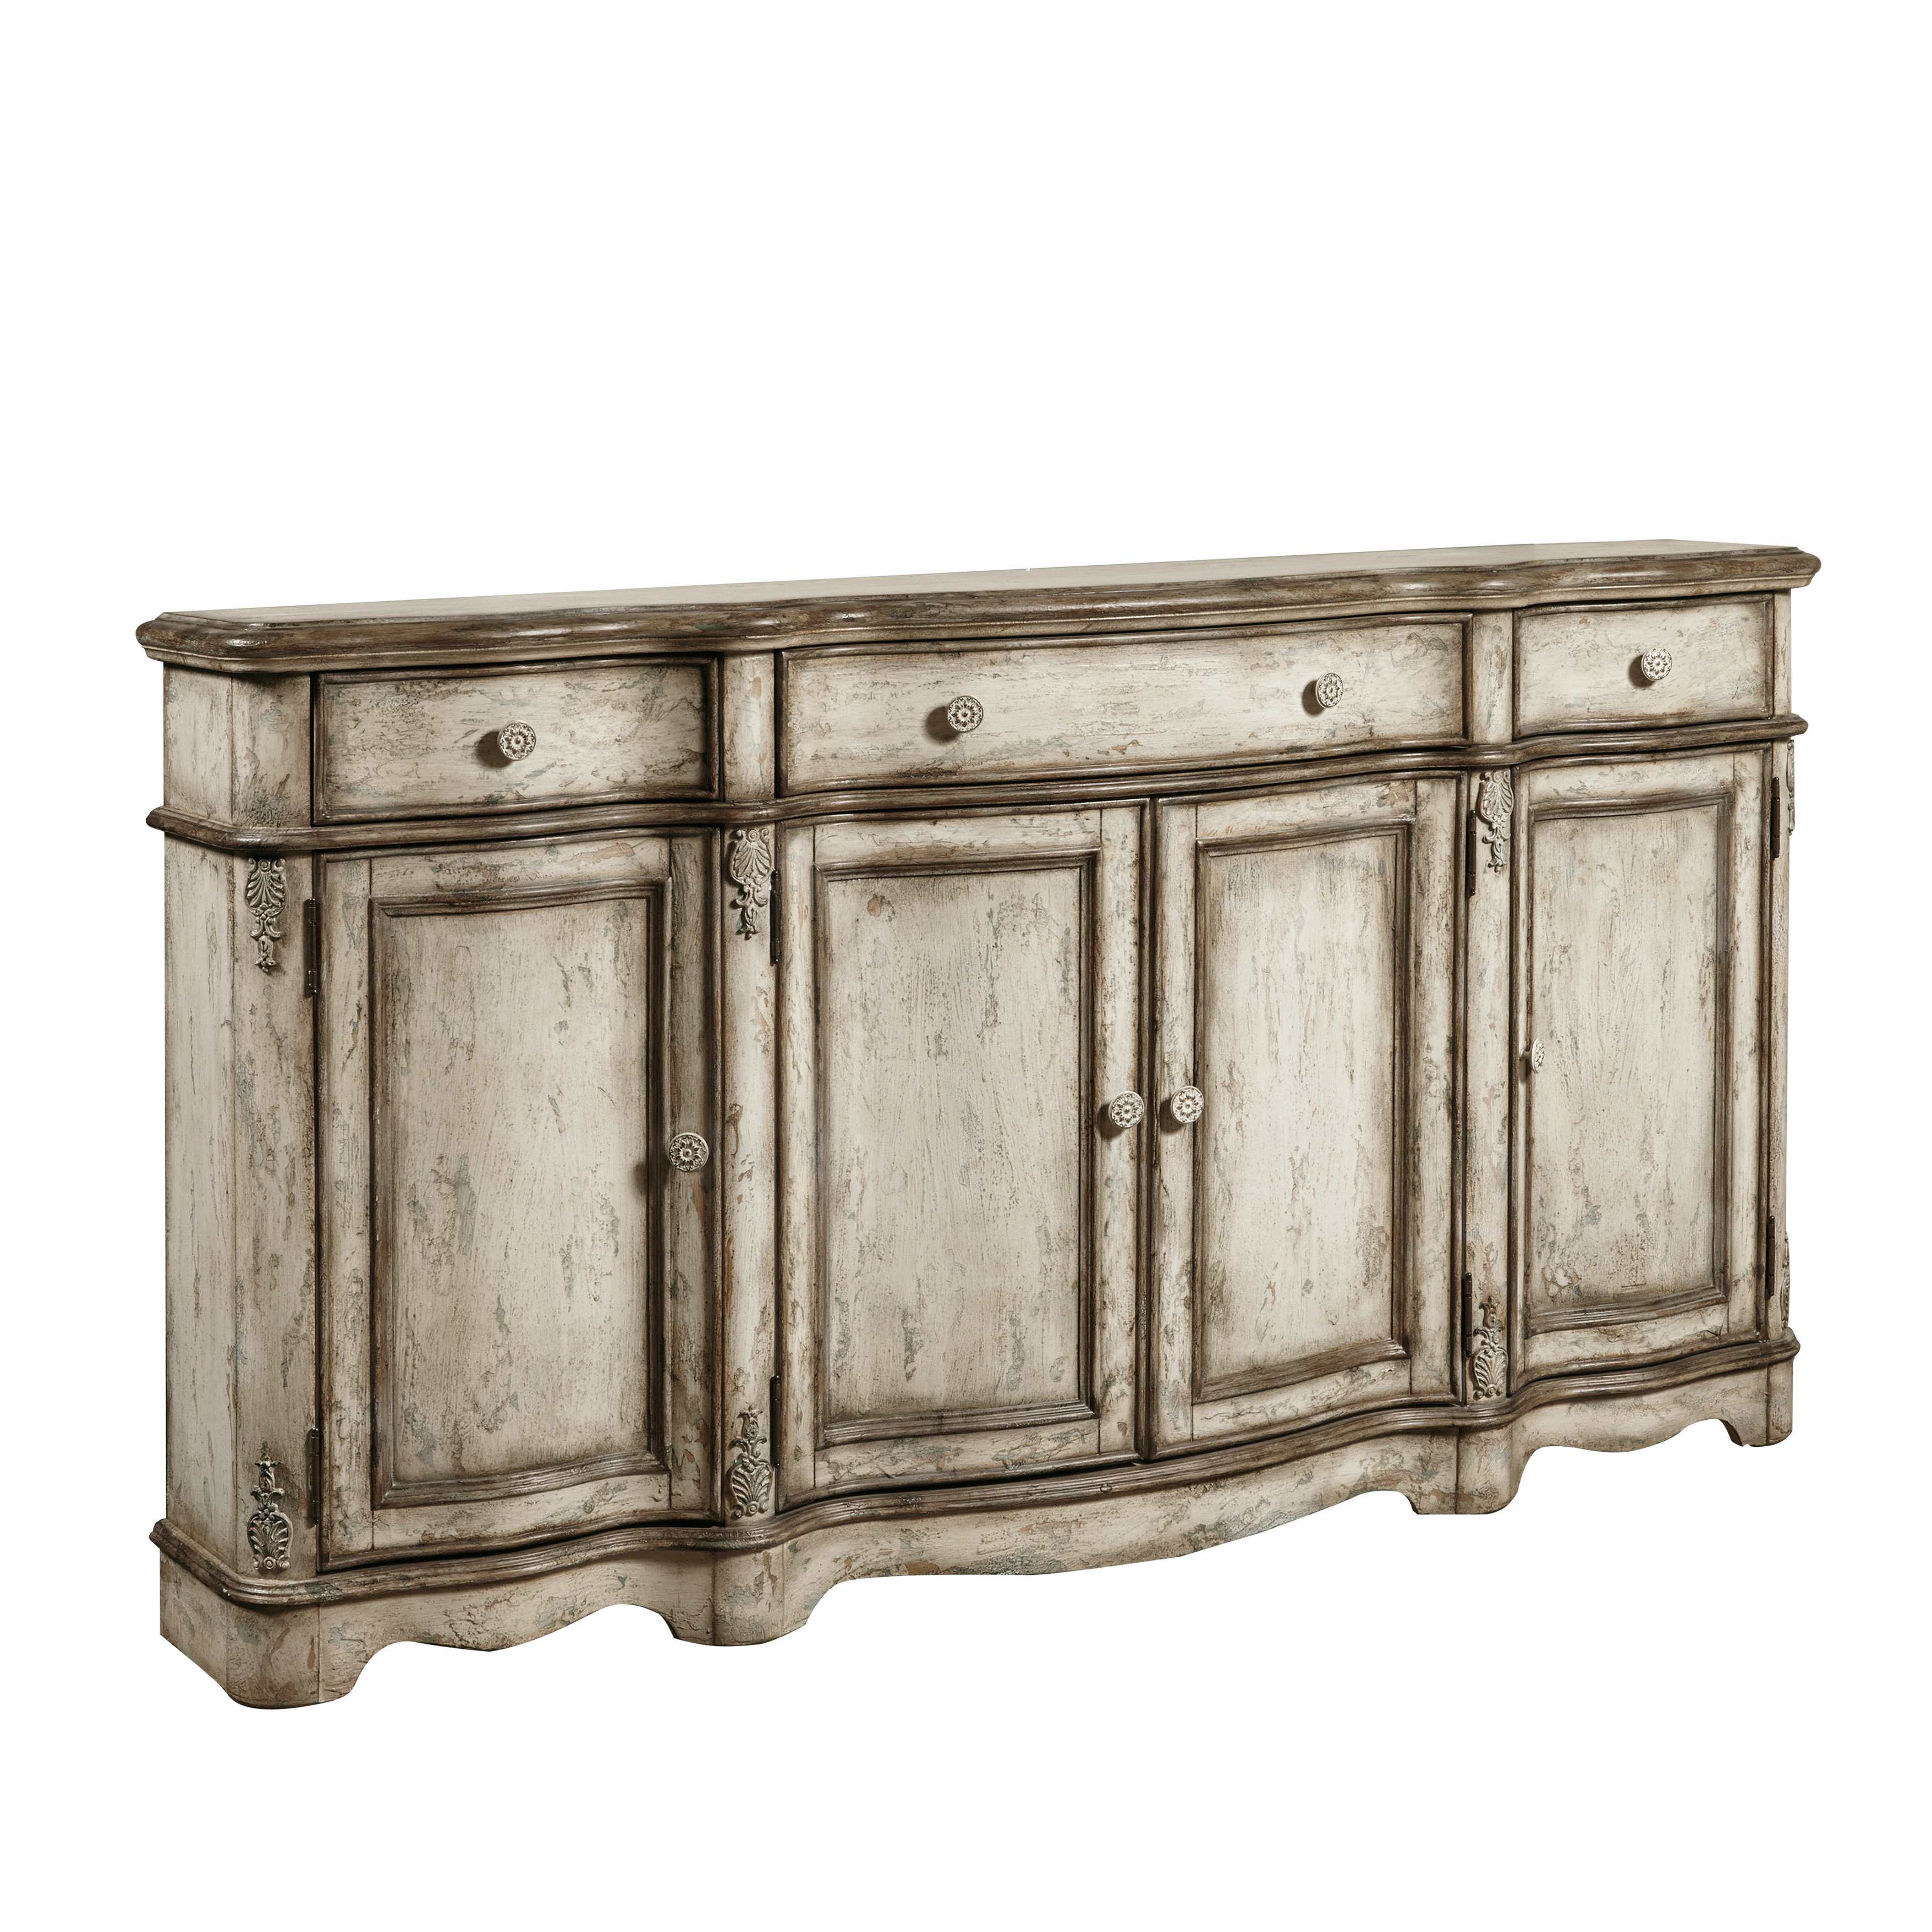 Fashionable Bremner Credenzas Intended For Farmhouse & Rustic Sideboards & Buffets (View 4 of 20)